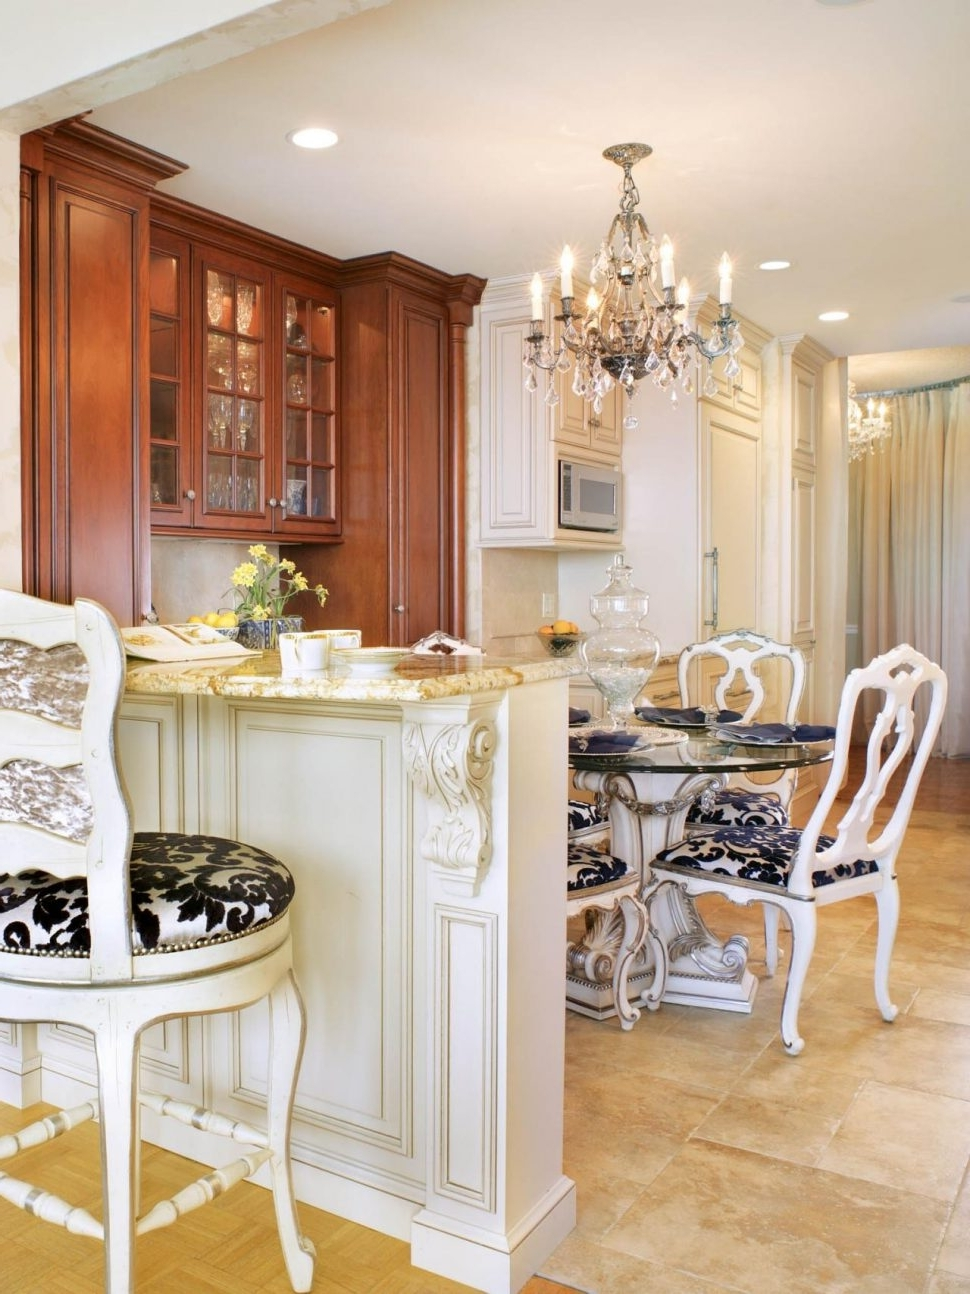 French Country Chandeliers For Kitchen Intended For Latest Chandeliers Design : Fabulous Charming Kitchen Chandelier (View 9 of 20)